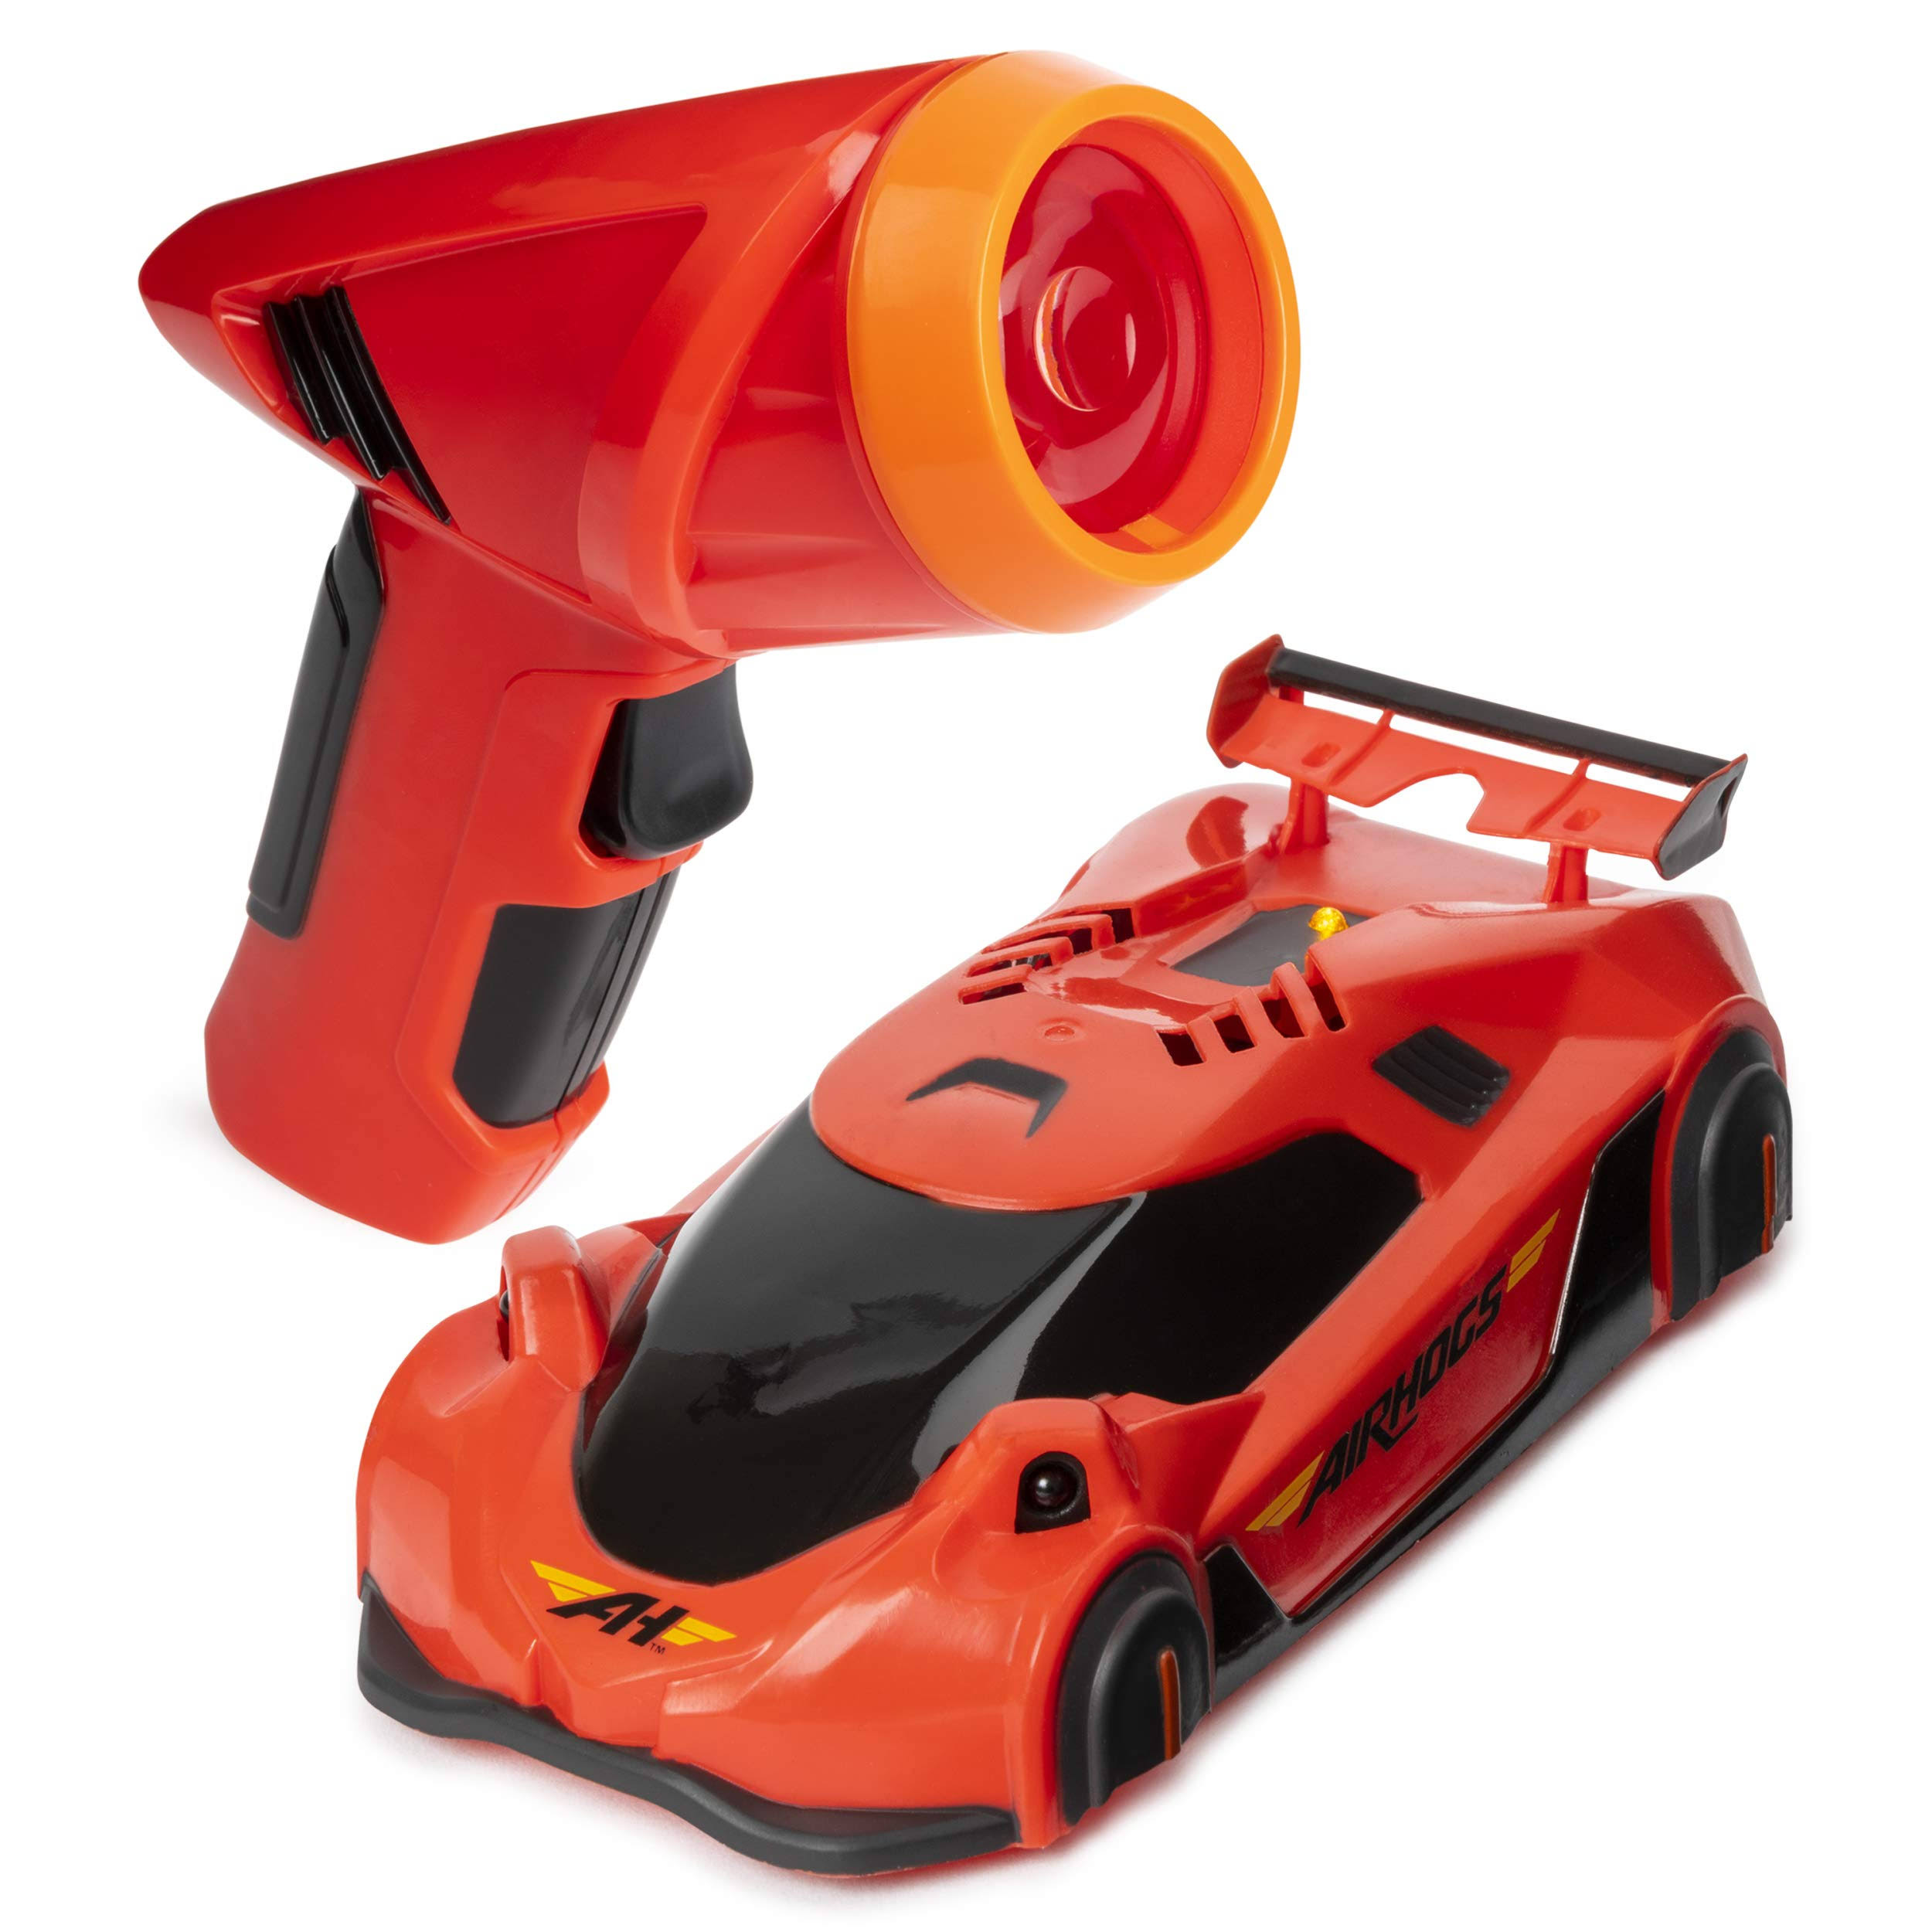 Air Hogs Zero Gravity Lazer Car Toy - Red